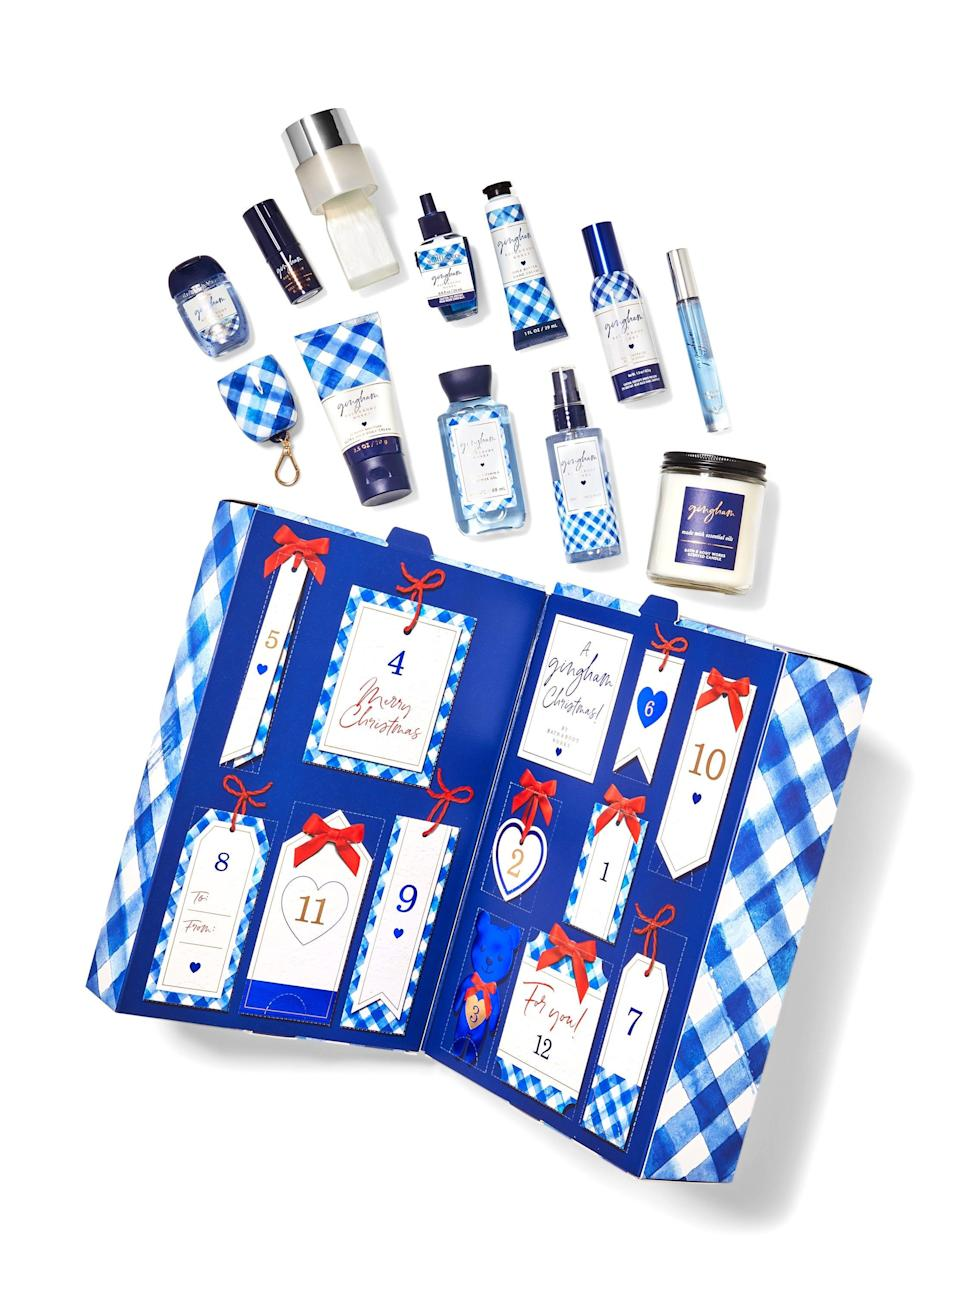 """<h3>Gingham Advent Calendar Gift Set</h3><br>If you're shopping for a Bath & Body Works stan, consider splurging on the hero gift: this adorable <a href=""""https://www.refinery29.com/en-us/2019/04/229871/bath-and-body-works-gingham-scent"""" rel=""""nofollow noopener"""" target=""""_blank"""" data-ylk=""""slk:gingham"""" class=""""link rapid-noclick-resp"""">gingham</a> advent calendar.<br><br><strong>Bath & Body Works</strong> GINGHAM Advent Calendar Gift Set, $, available at <a href=""""https://go.skimresources.com/?id=30283X879131&url=https%3A%2F%2Fwww.bathandbodyworks.com%2Fp%2Fgingham-advent-calendar-gift-set-025137999.html%3Fcgid%3Dgift-sets%23start%3D1"""" rel=""""nofollow noopener"""" target=""""_blank"""" data-ylk=""""slk:Bath & Body Works"""" class=""""link rapid-noclick-resp"""">Bath & Body Works</a>"""